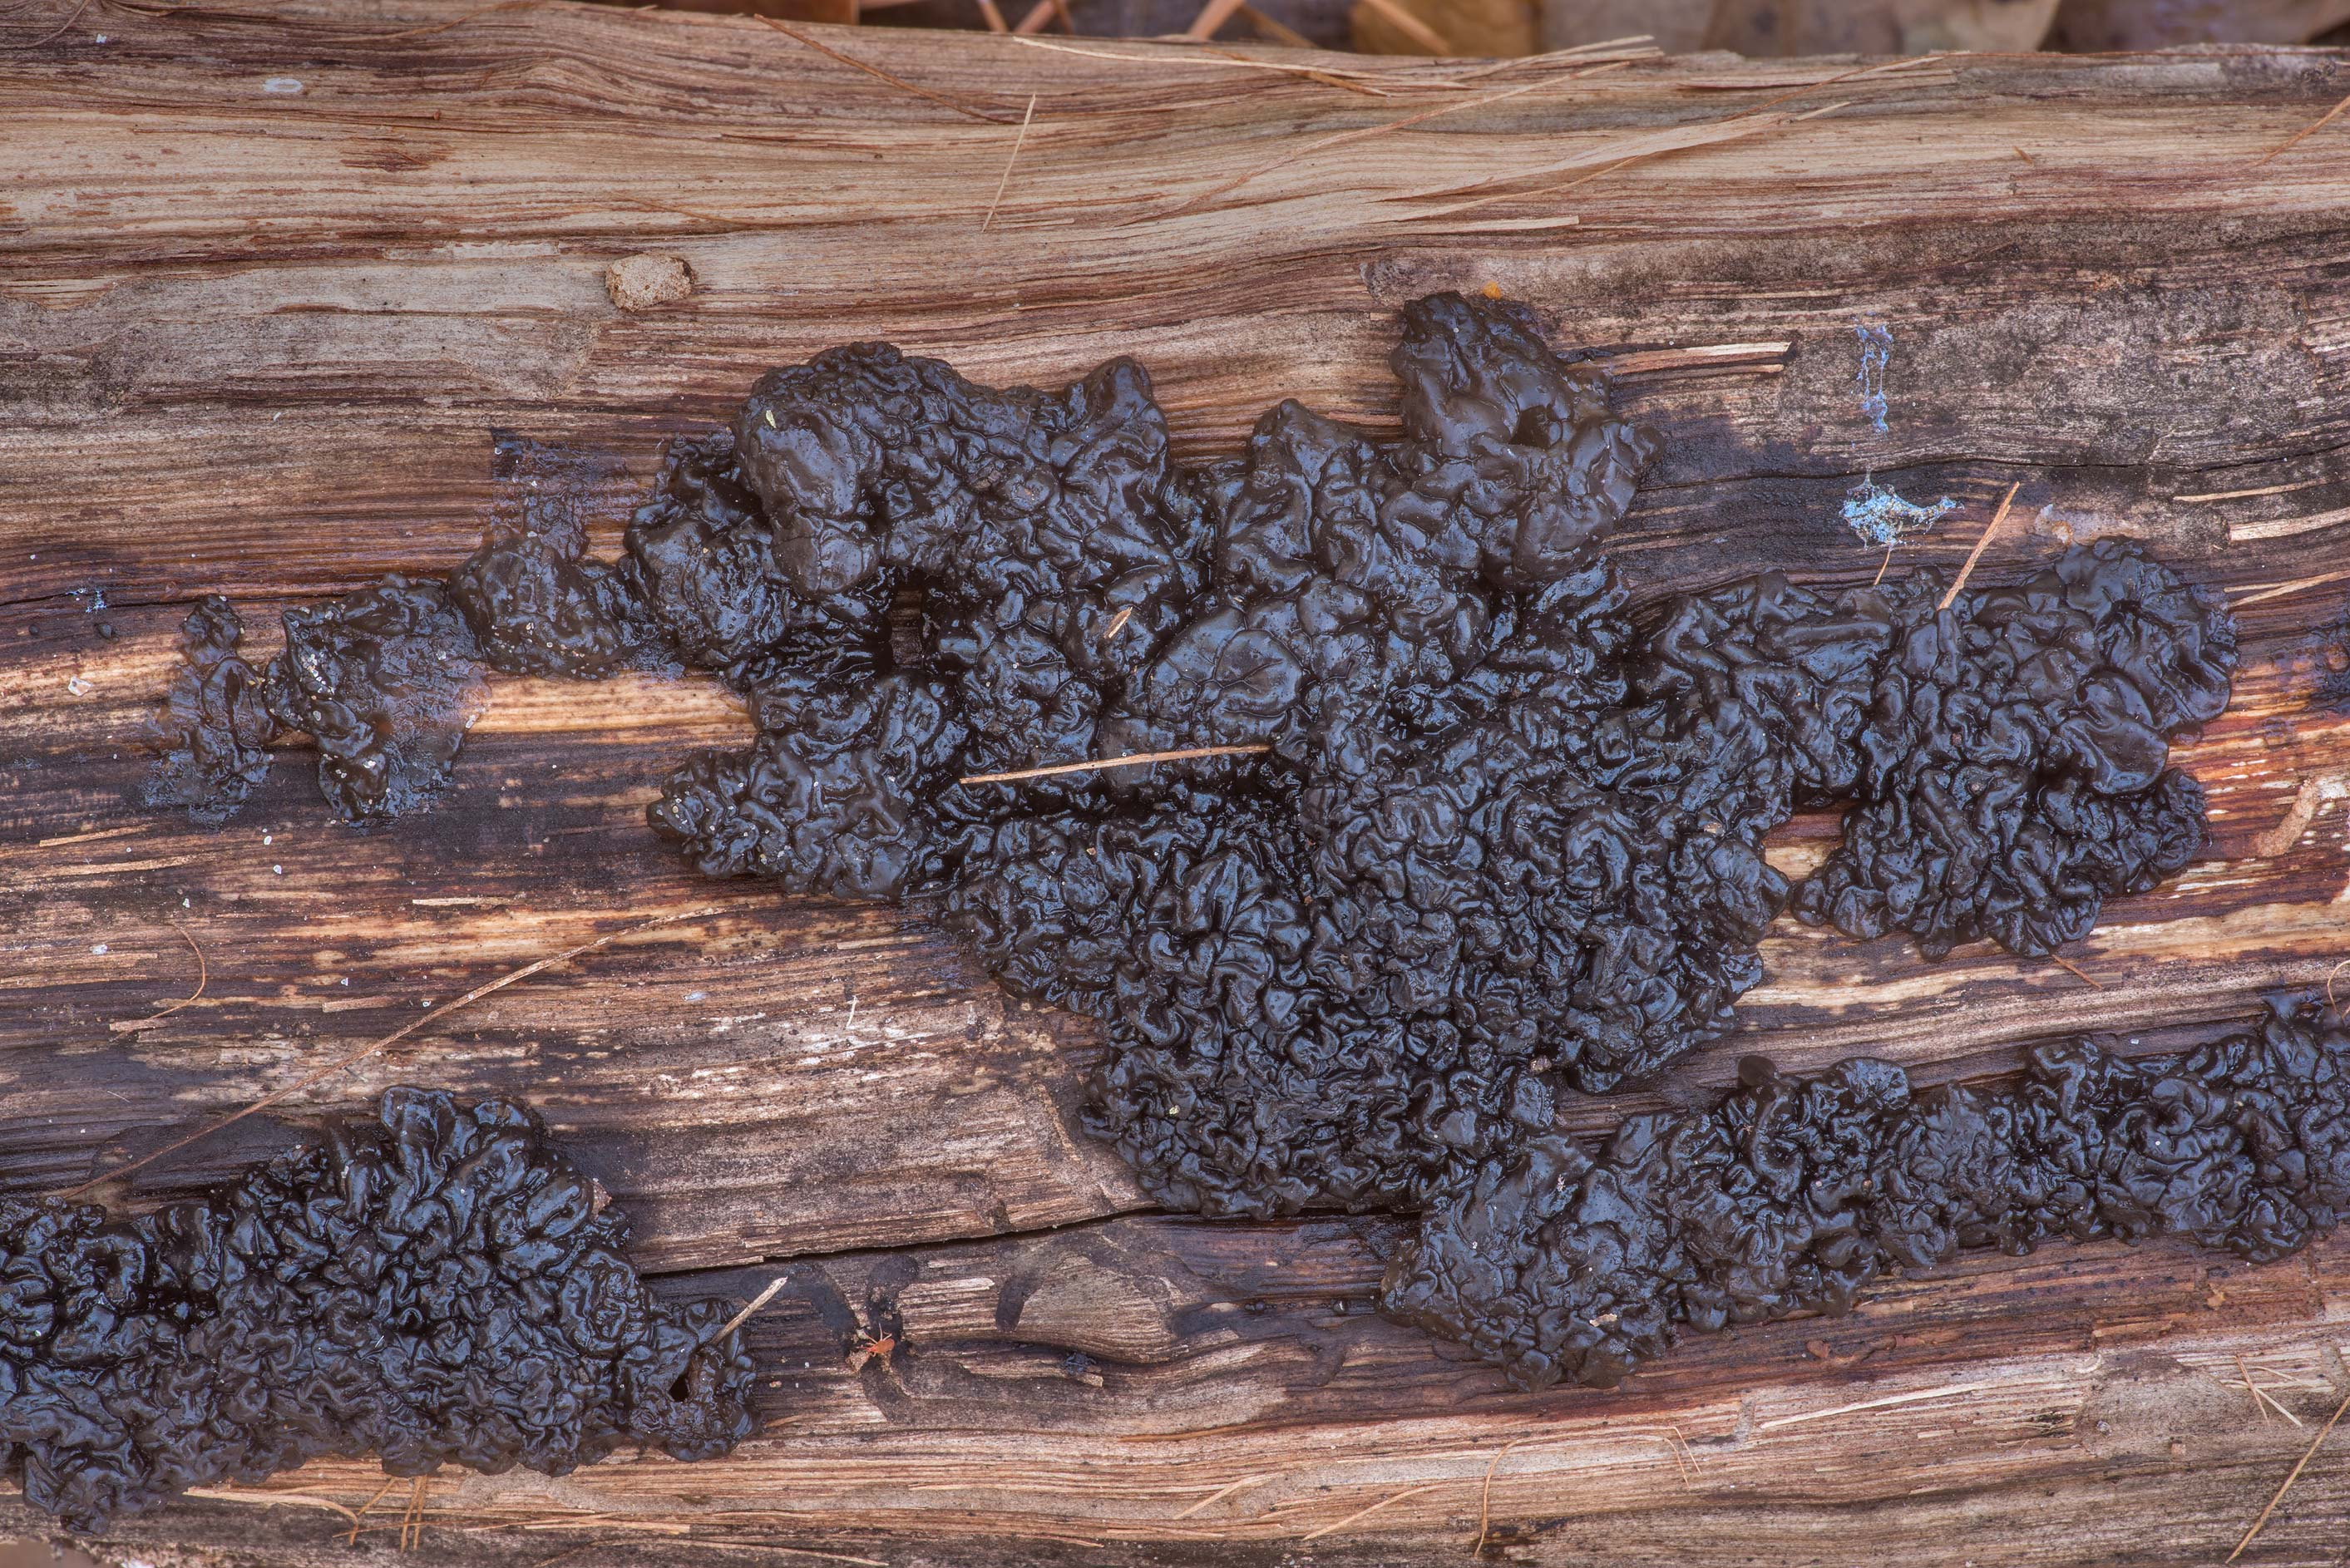 Warty fungus black jelly roll (Exidia glandulosa...Forest north from Montgomery. Texas